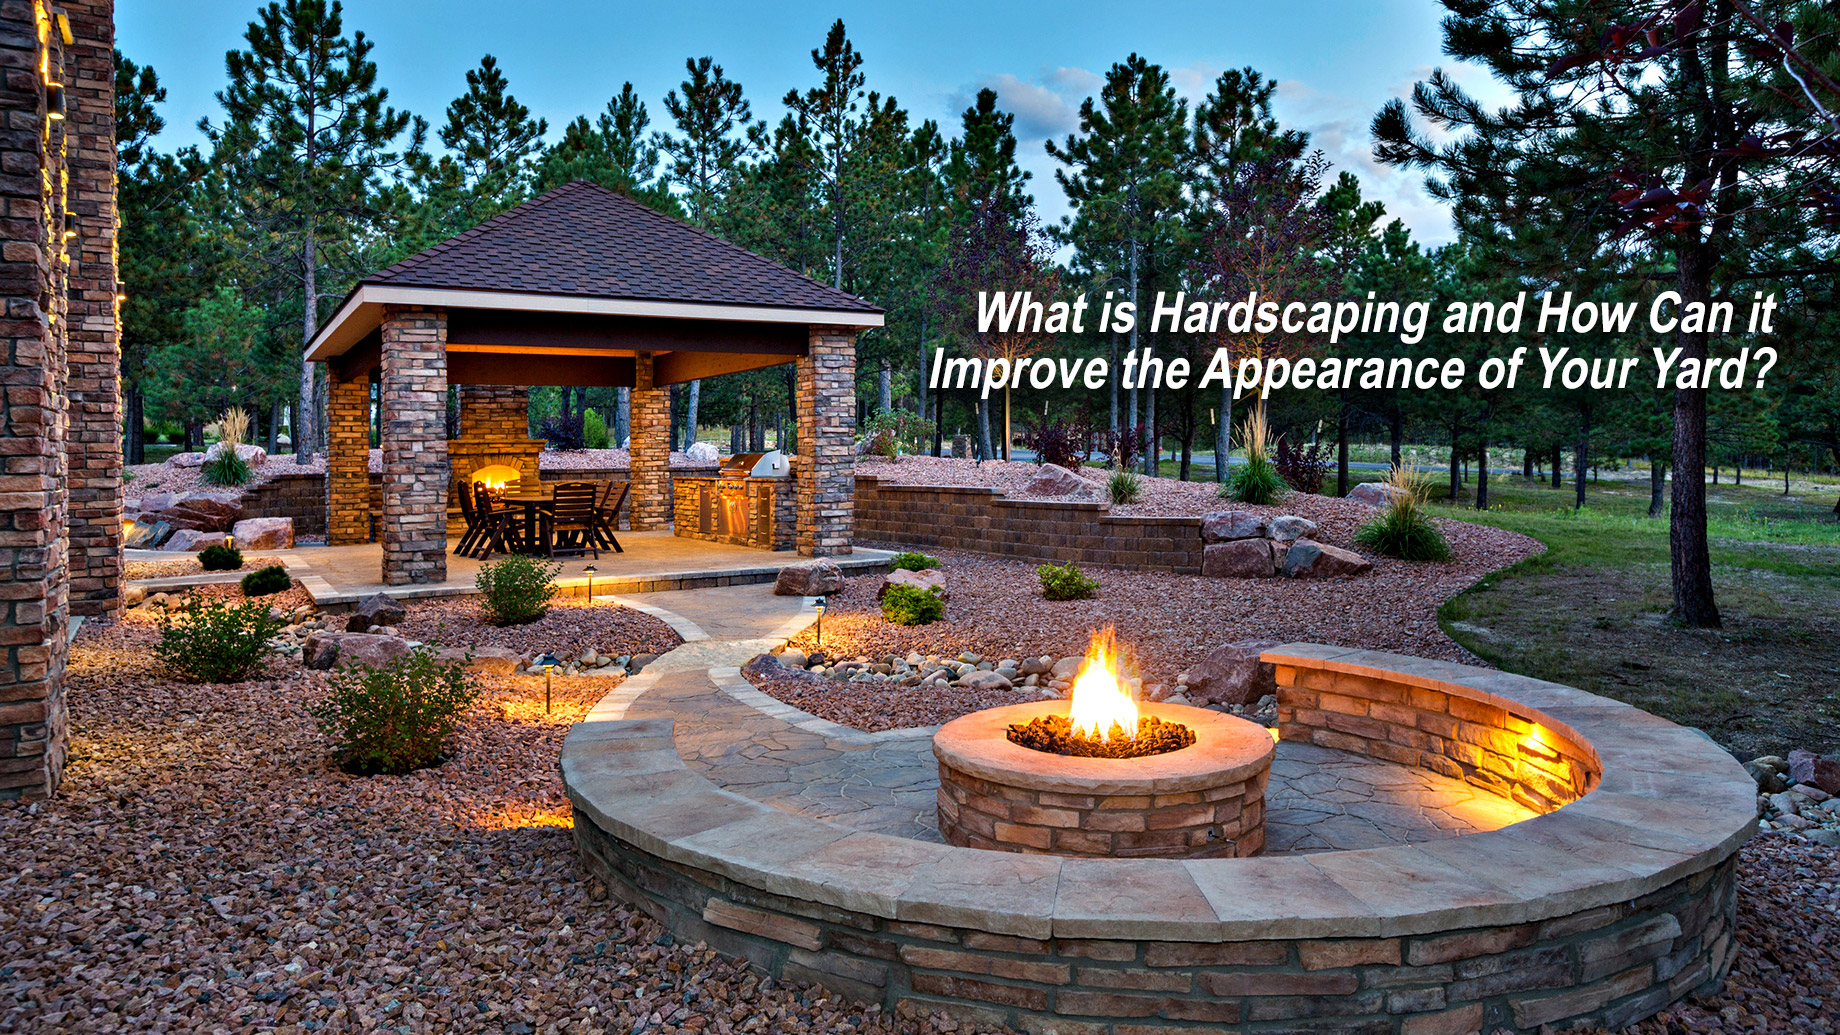 What is Hardscaping and How Can it Improve the Appearance of Your Yard?